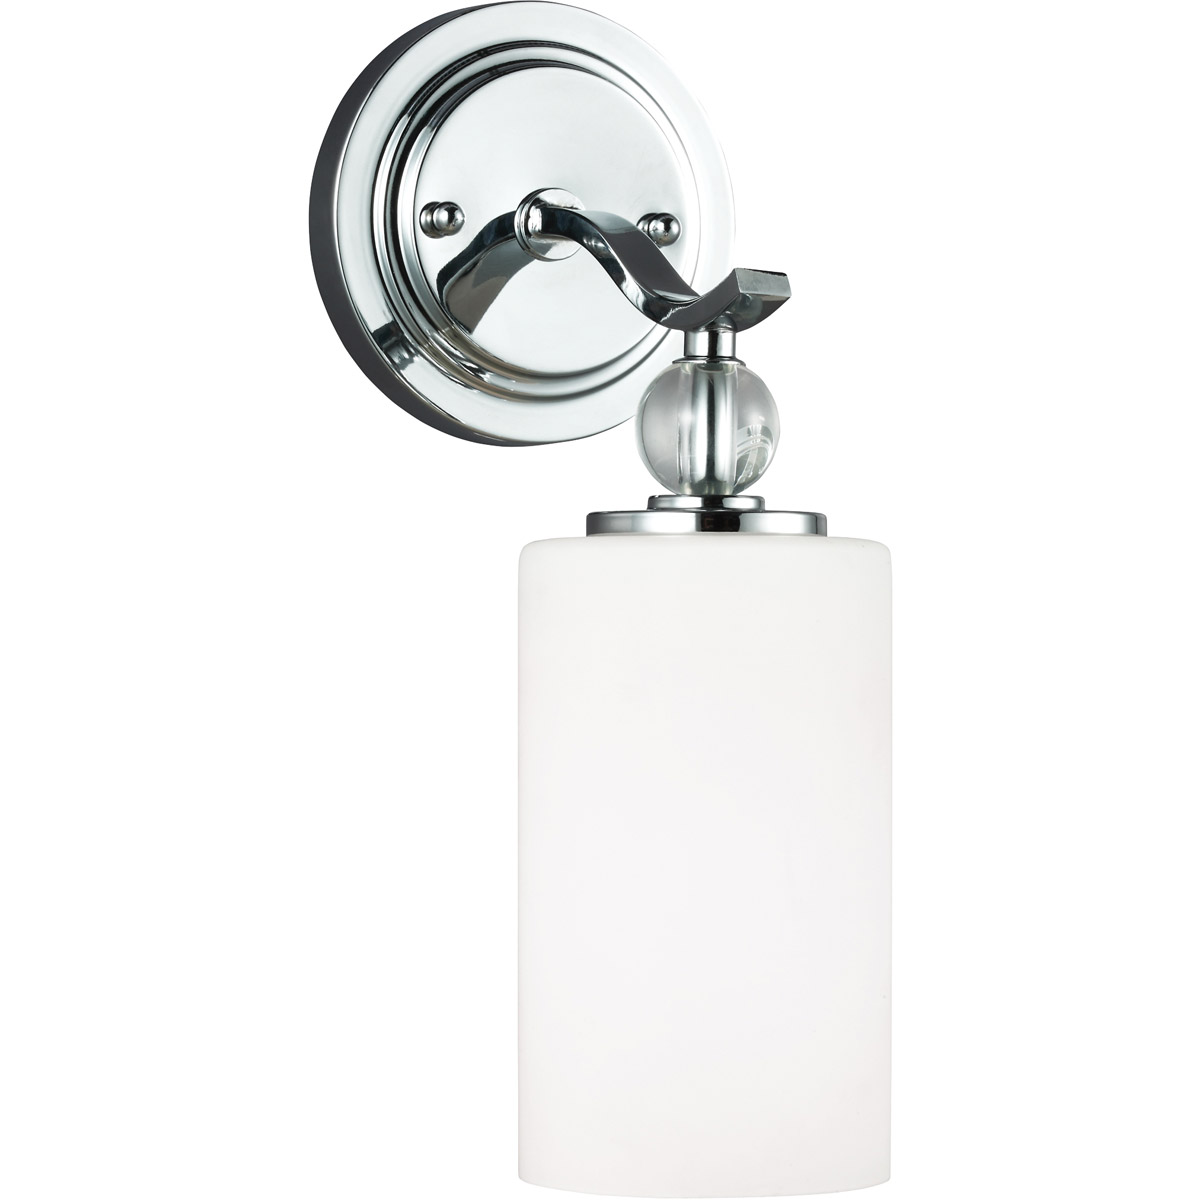 Sea Gull Englehorn 1 Light Bath Sconce in Chrome / Optic Crystal 4113401BLE-05 photo